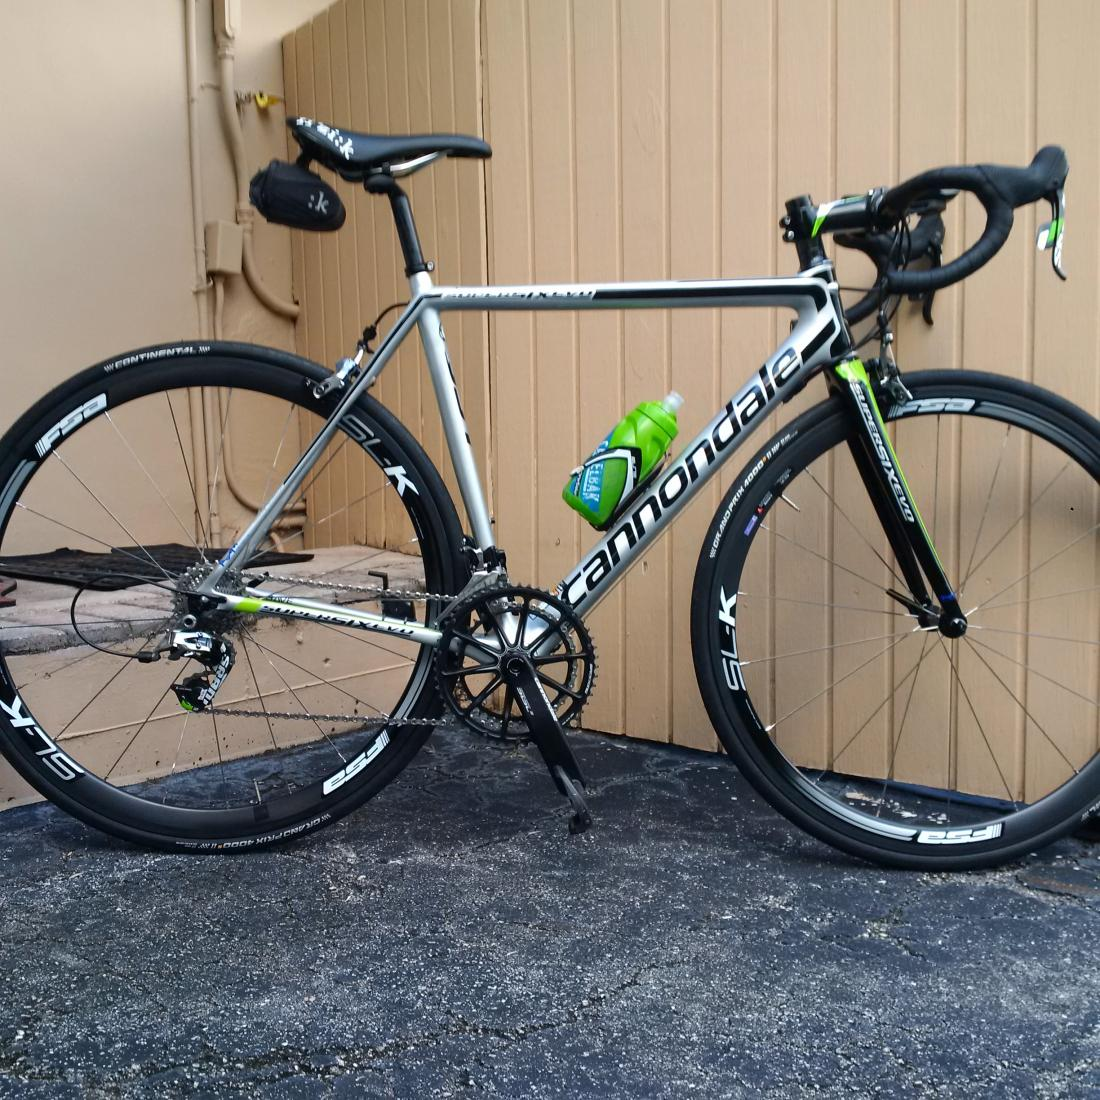 Post your Cannondale pics here!-img_20161227_074643.jpg